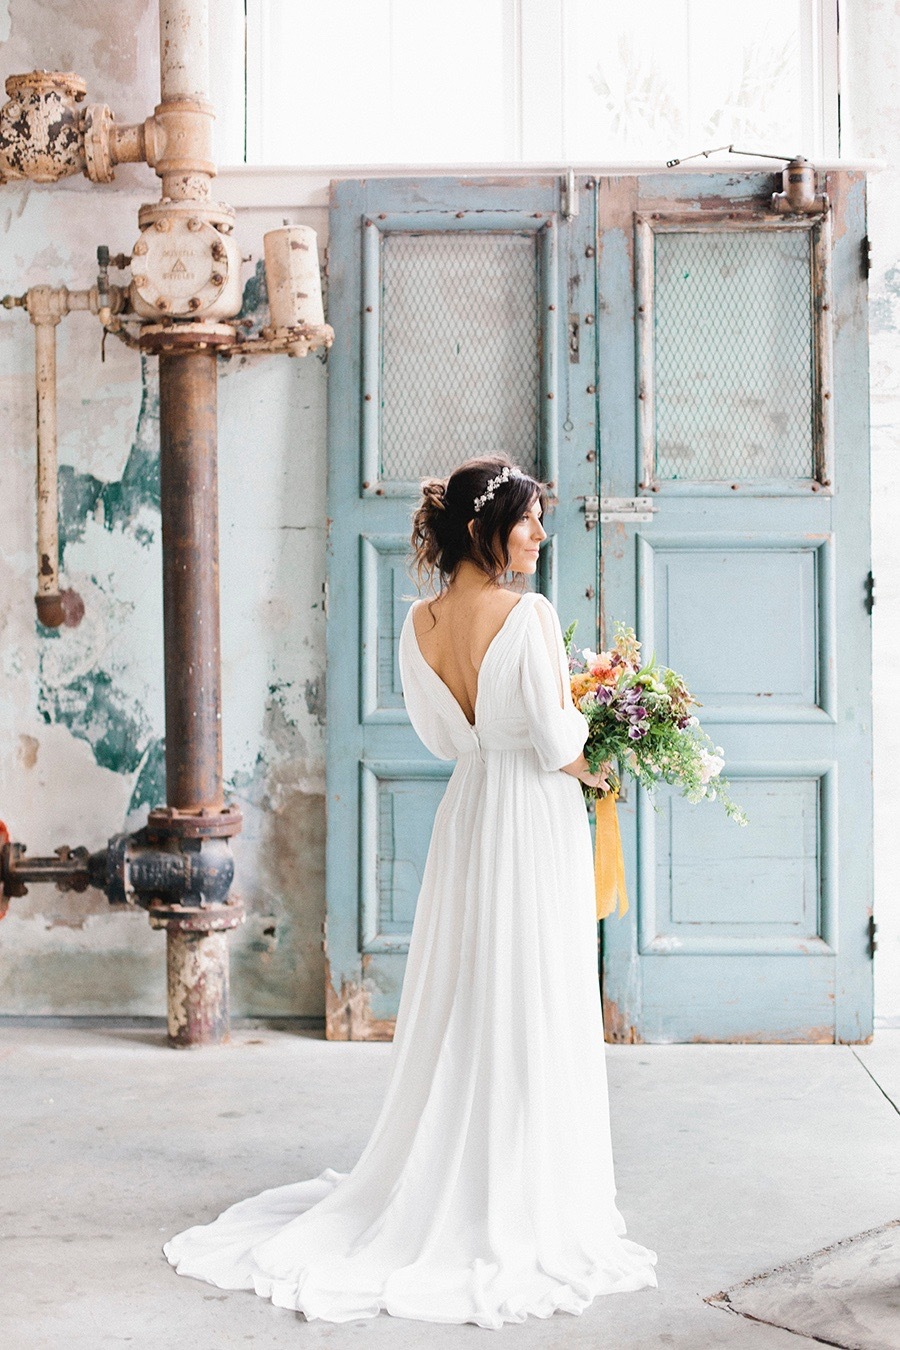 Image by Finch and Farrow   Dress by Alva Bridal